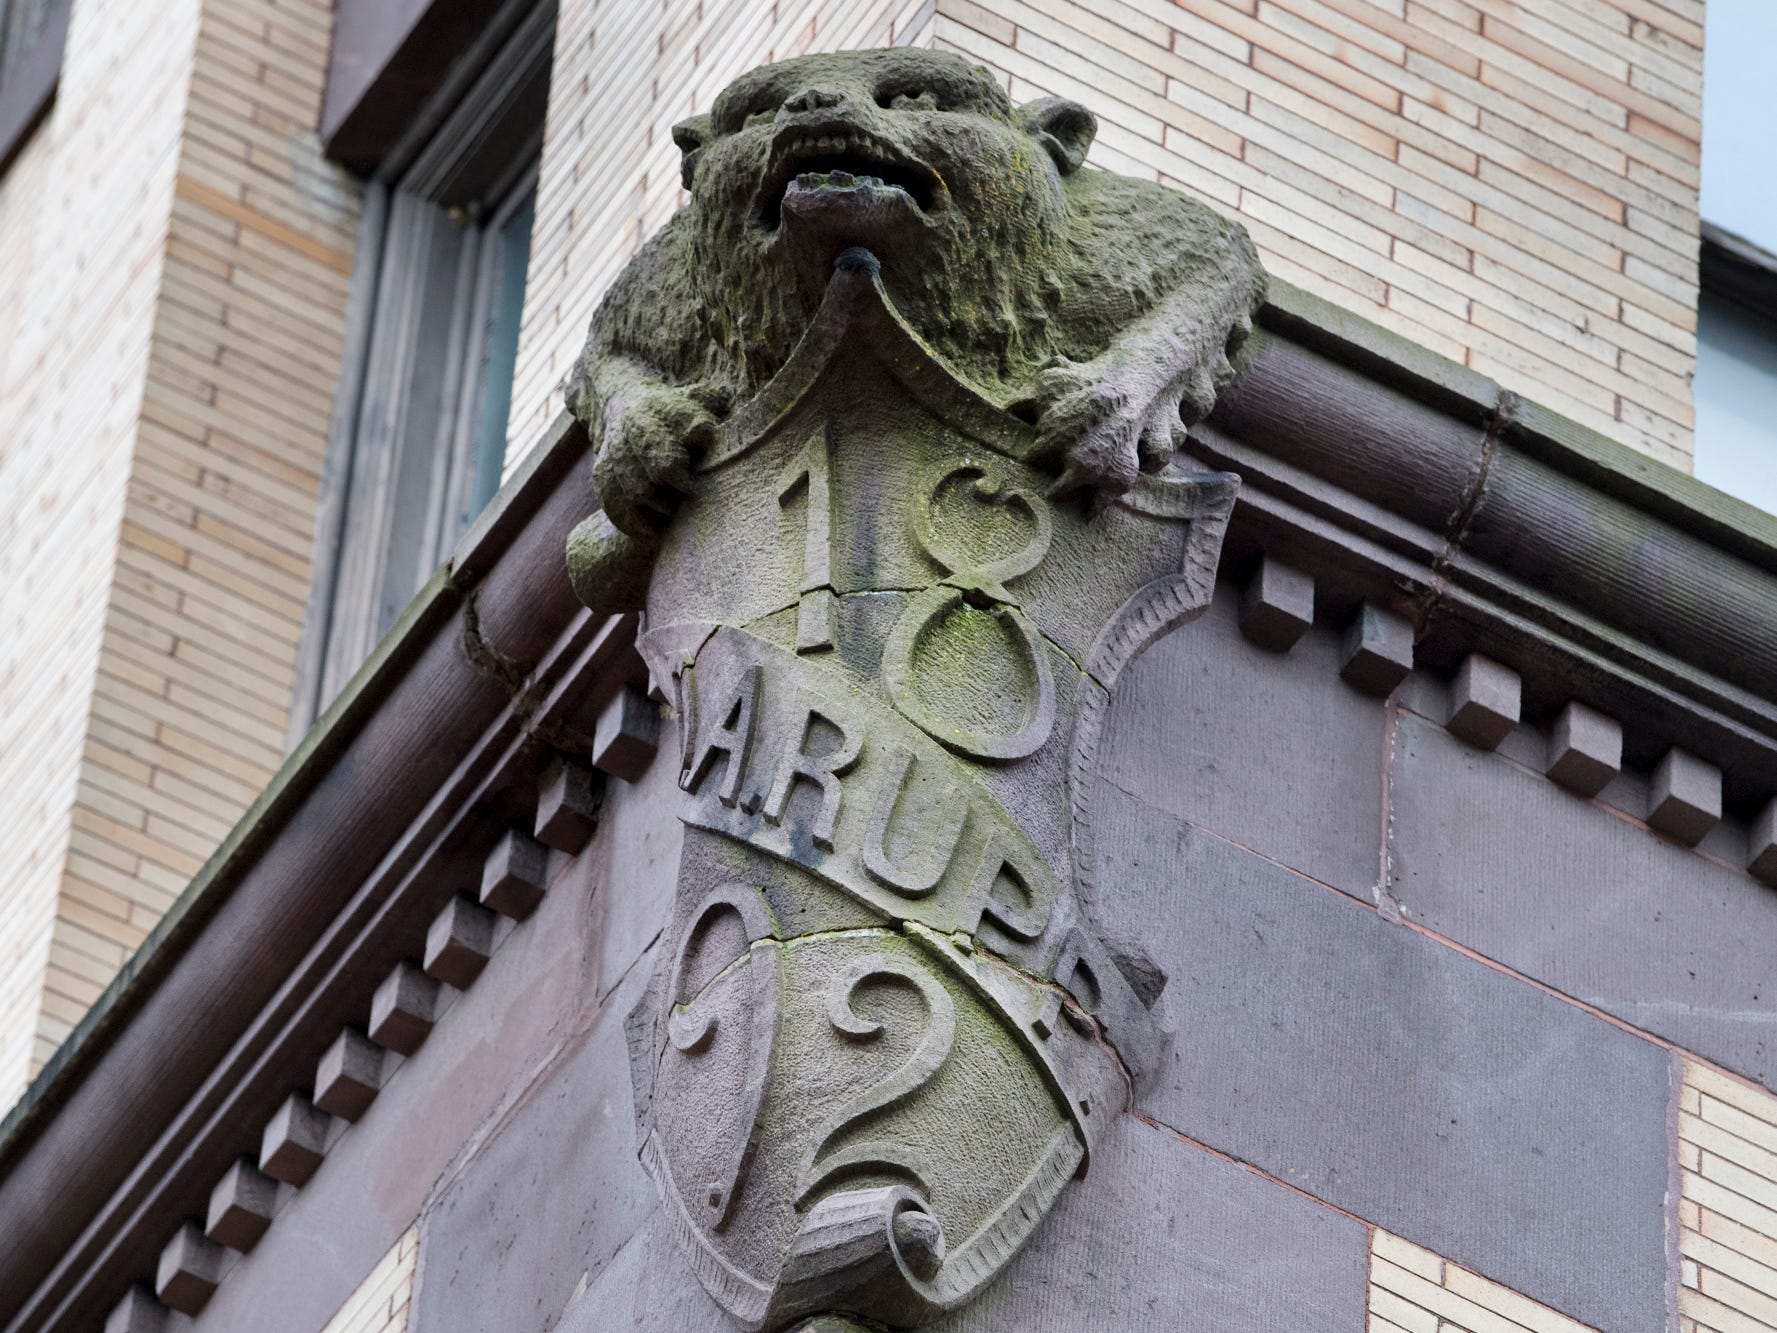 The Rupp Building in York has a bear in brownstone overlooking Continental Square. The date, 1892, was the year construction began. It finished the following year.